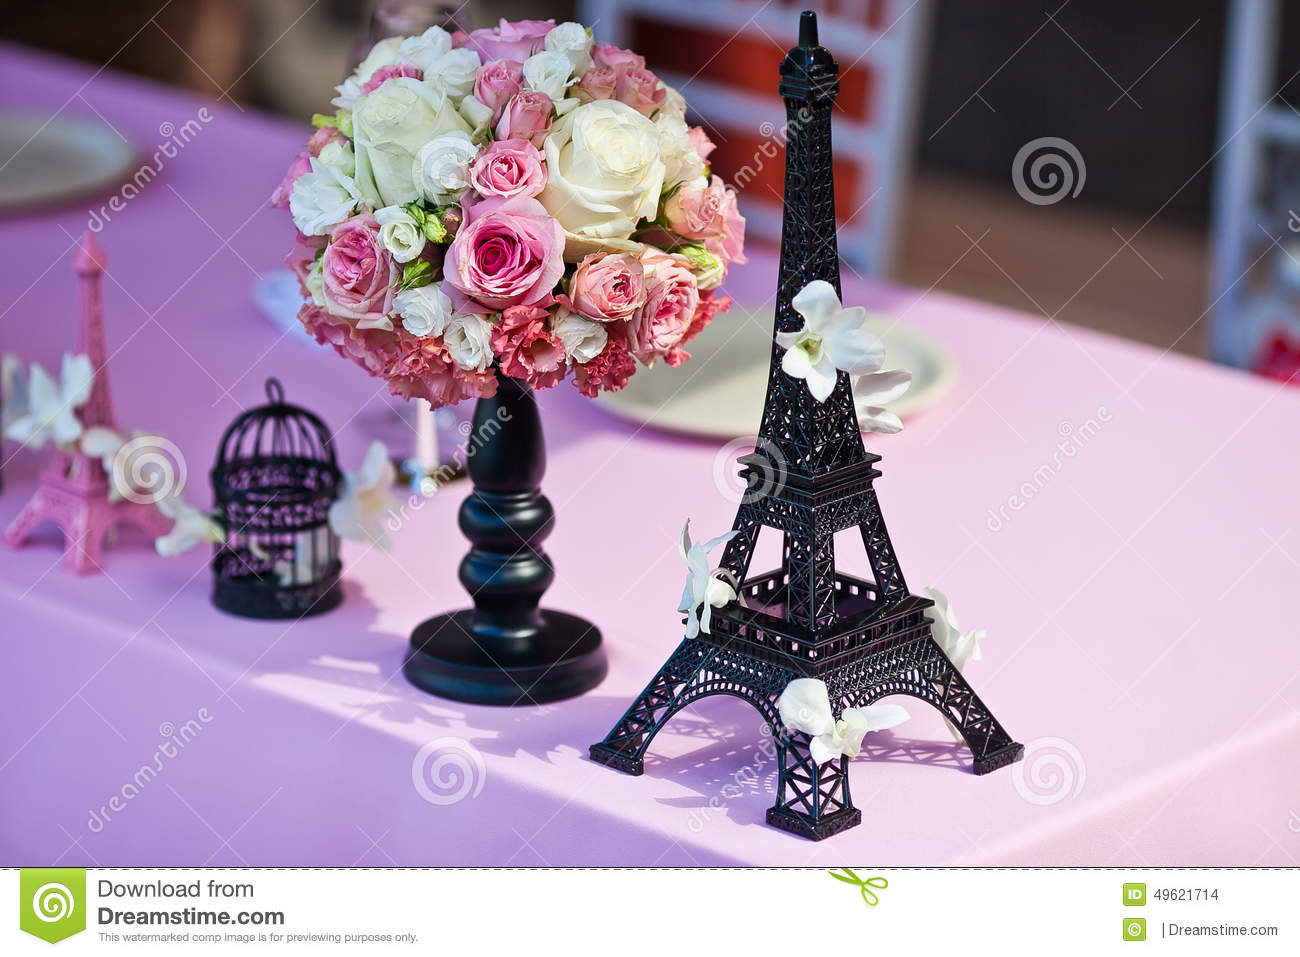 Dinner table setting ideas romantic dinner table setting ideas - Flower Bouquet With Eiffel Tower On A Wedding Table Stock